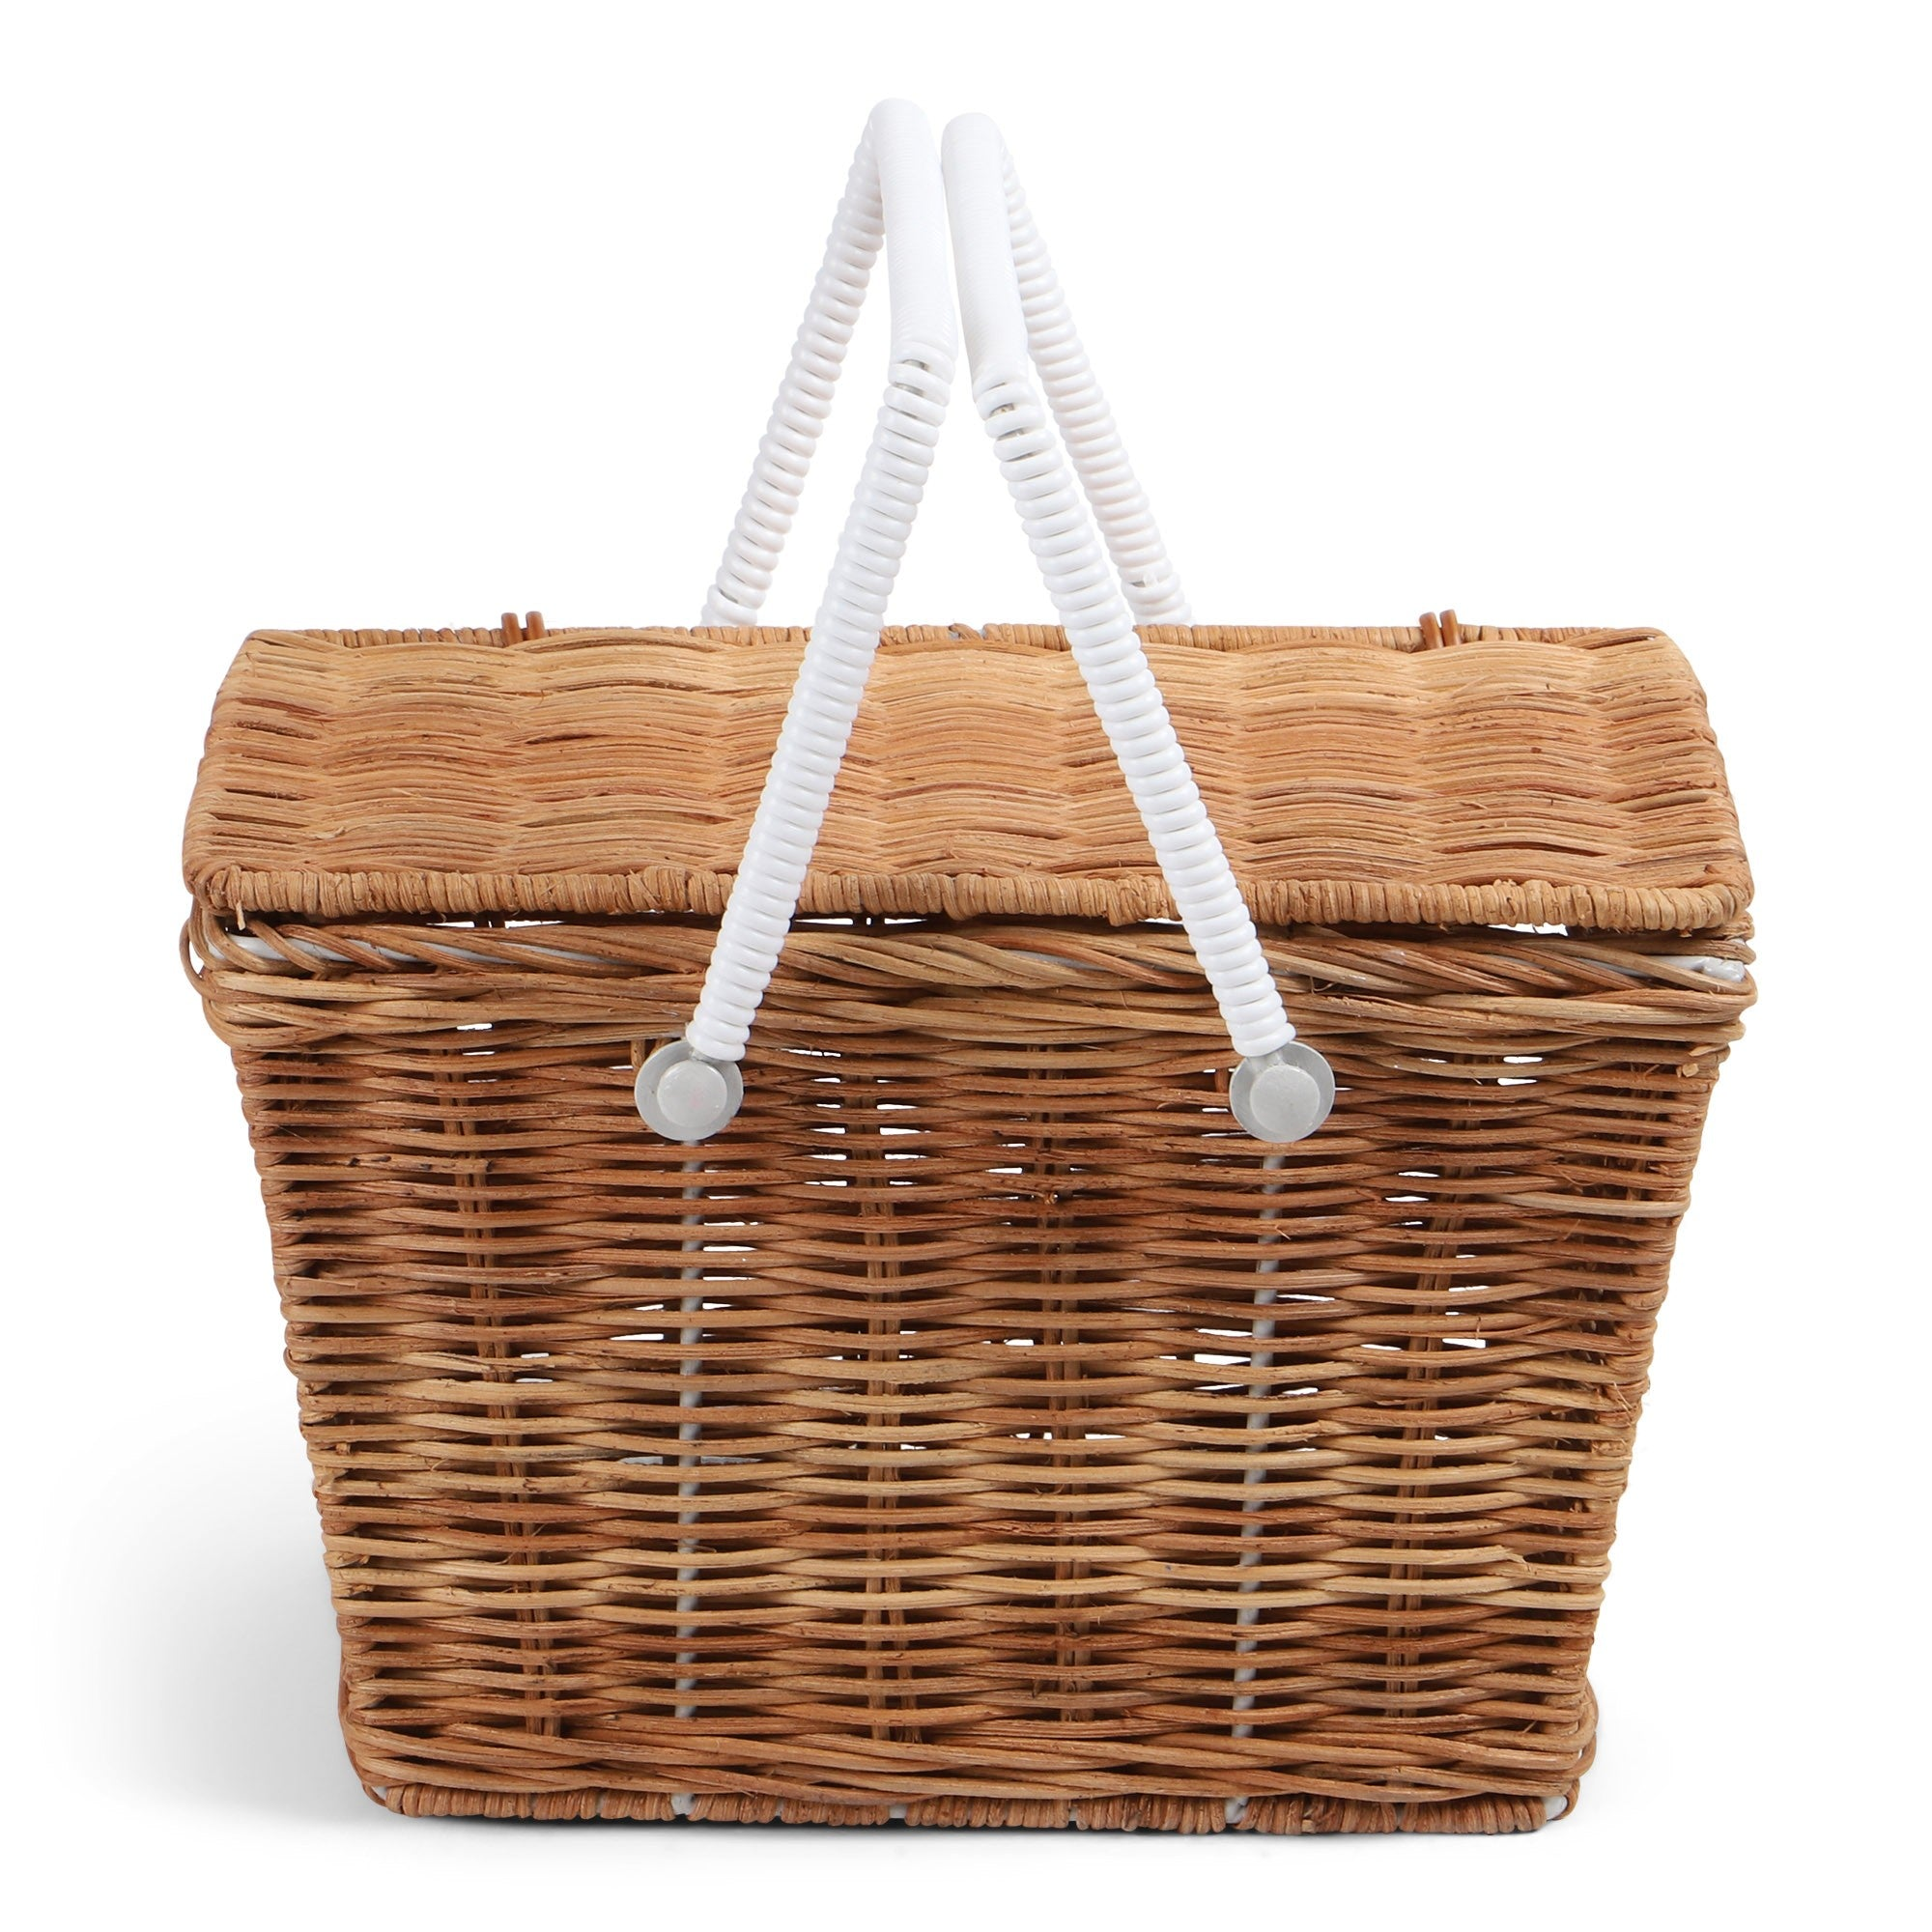 Piki Basket in Natural by Olli Ella